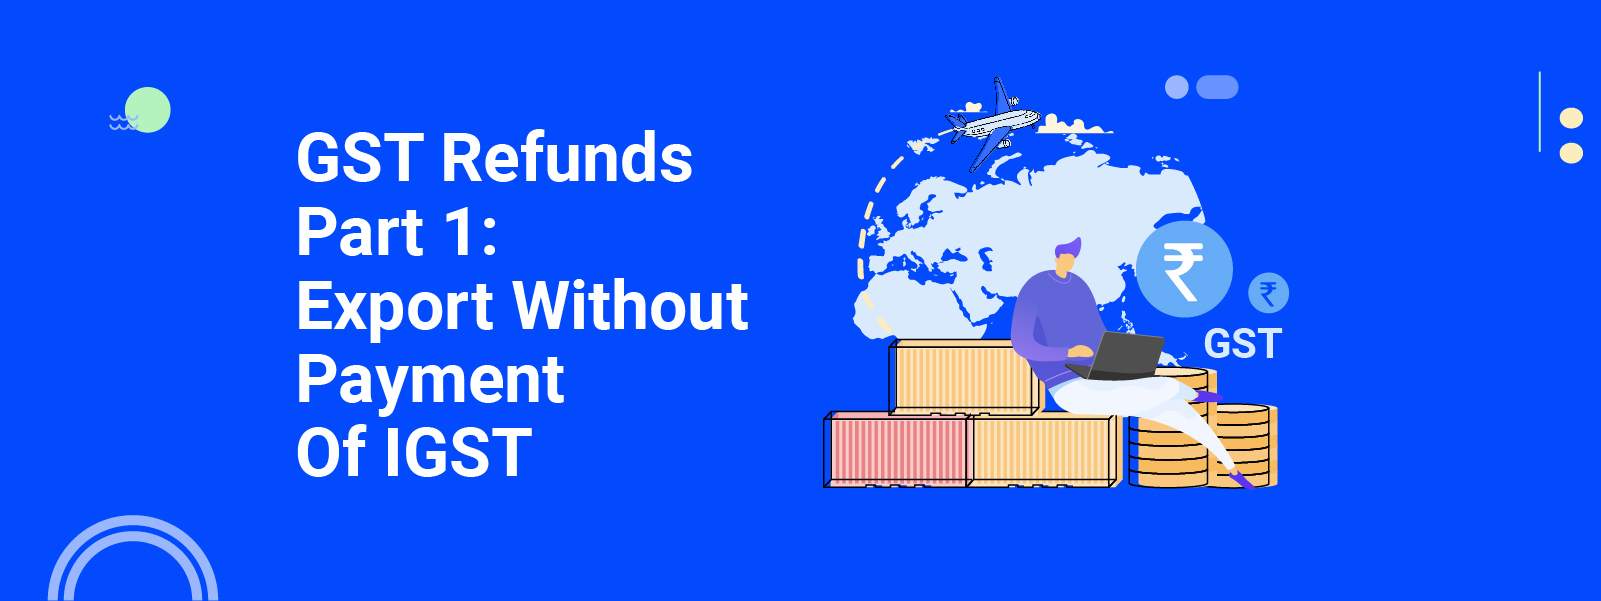 GST Refunds Part 1: Export Without Payment Of IGST